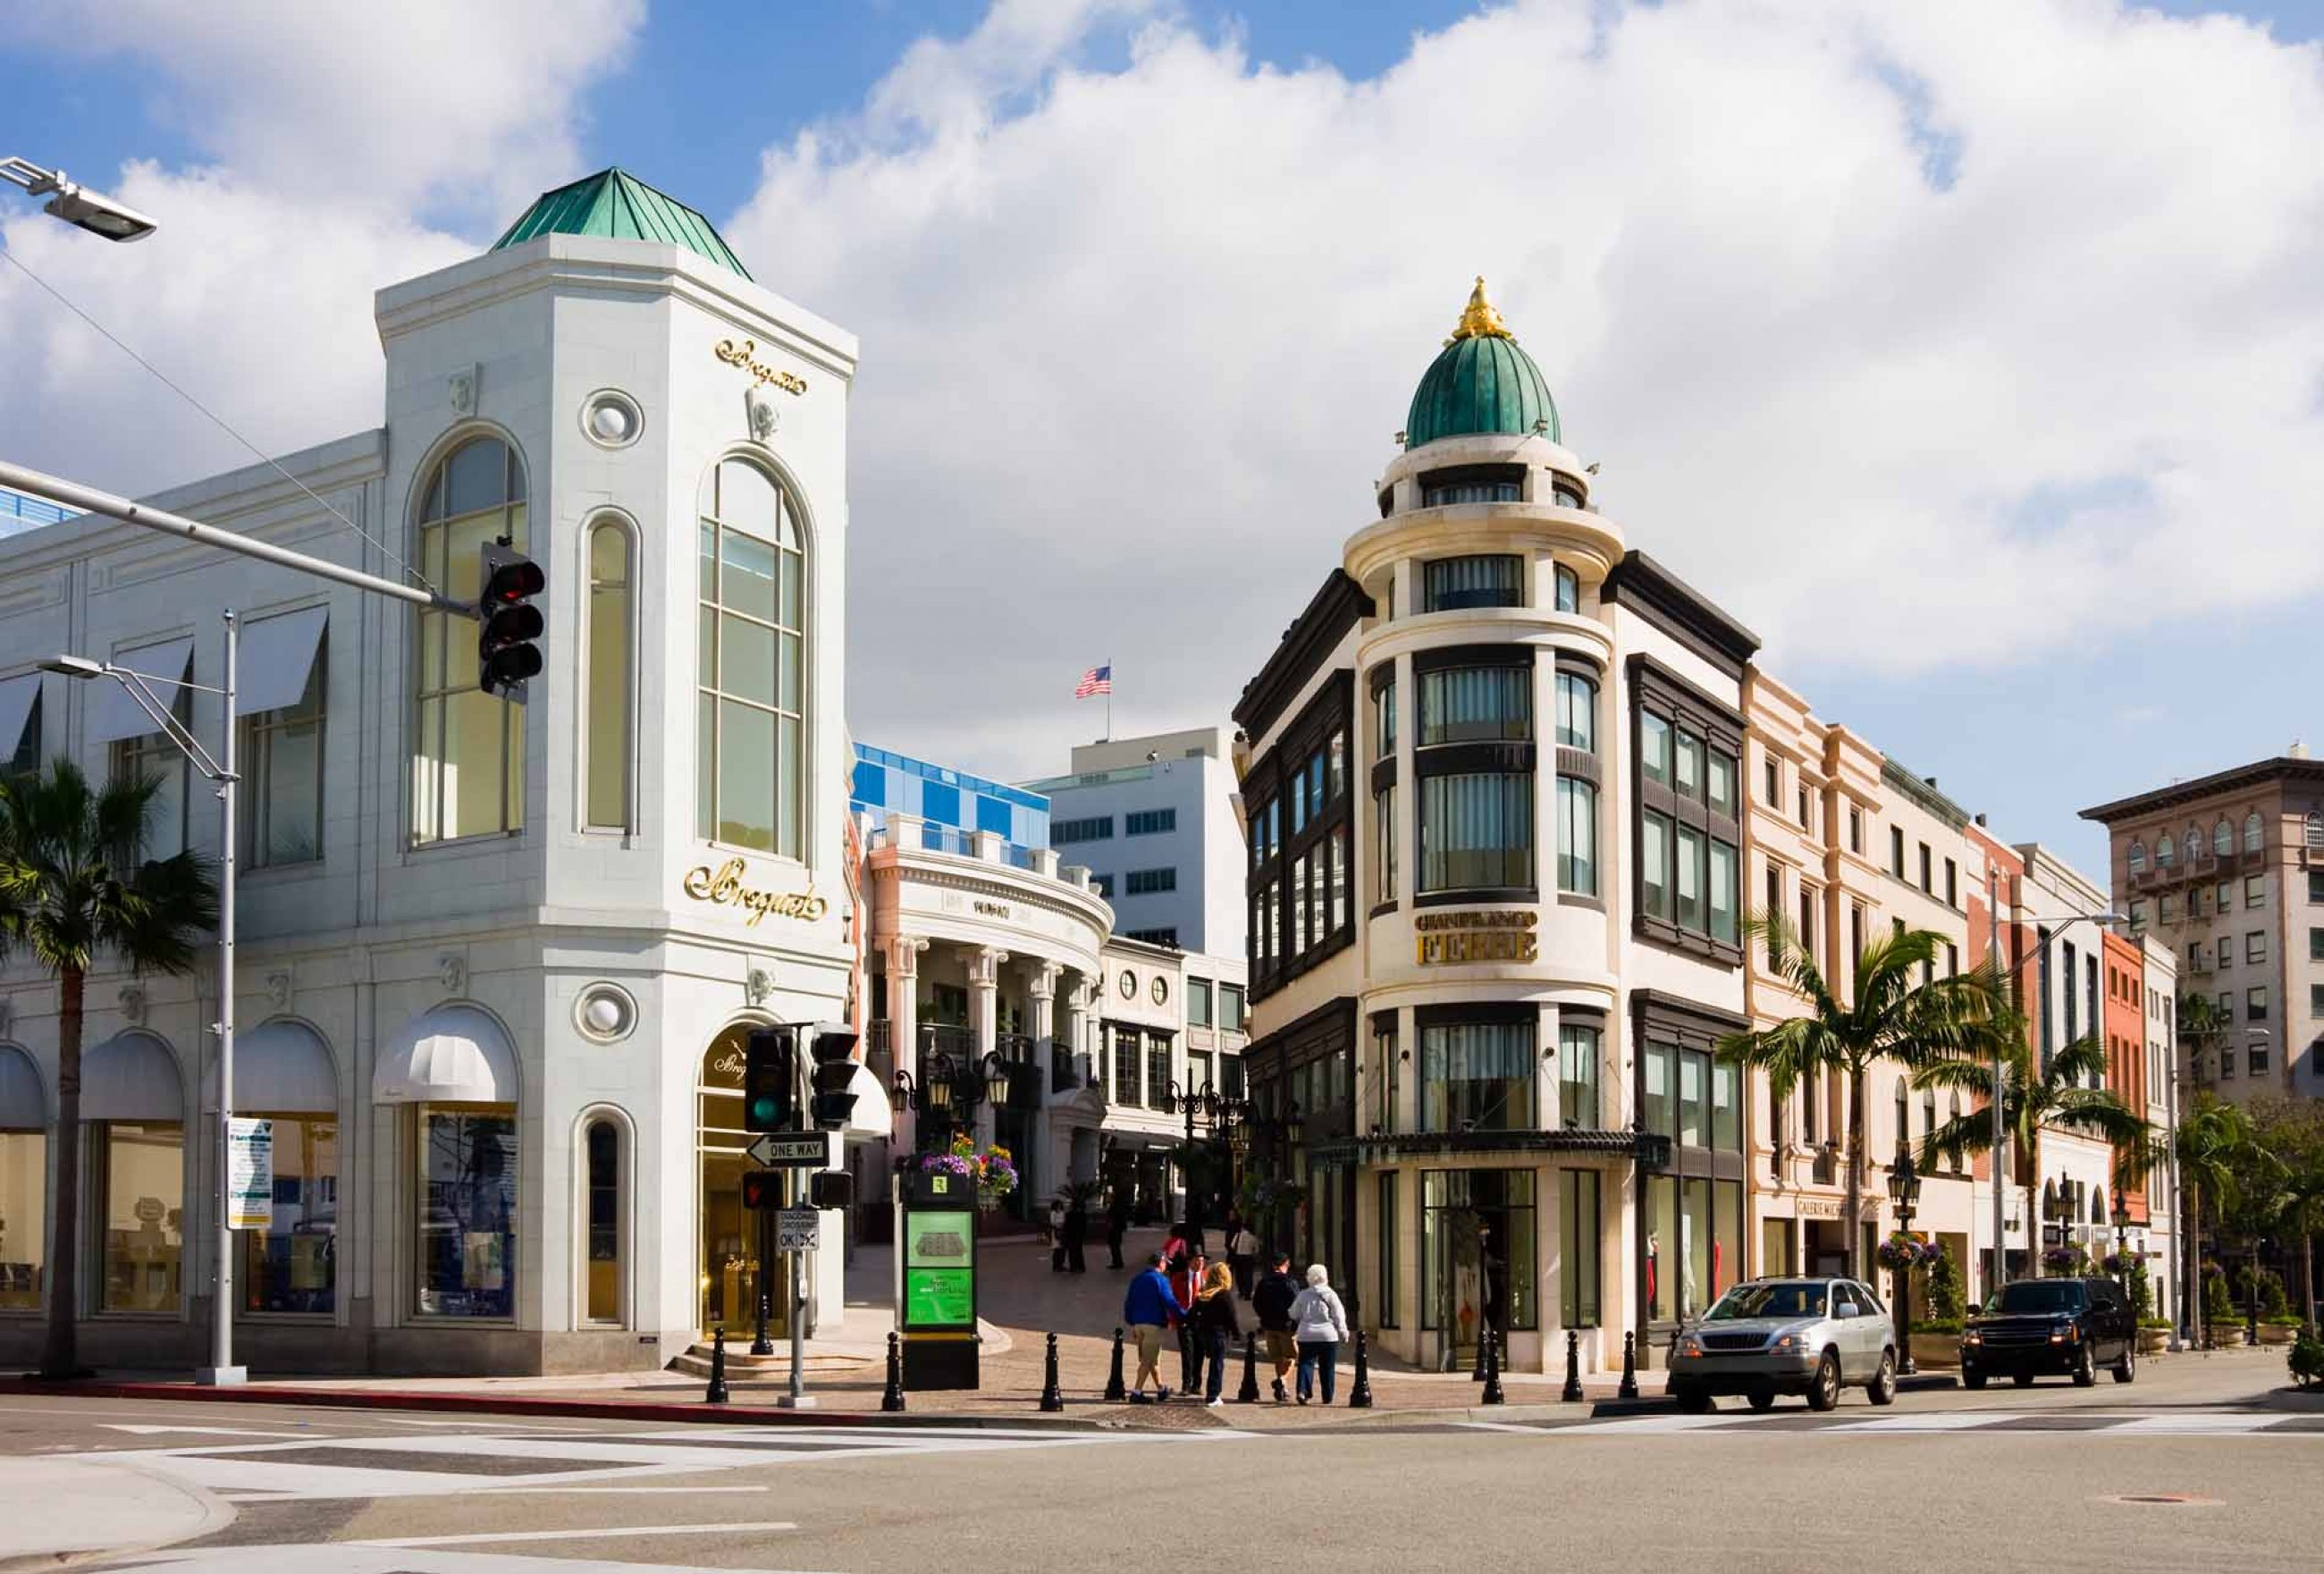 https://bubo.sk/uploads/galleries/7406/la-rodeo-drive-beverly-hills.jpg